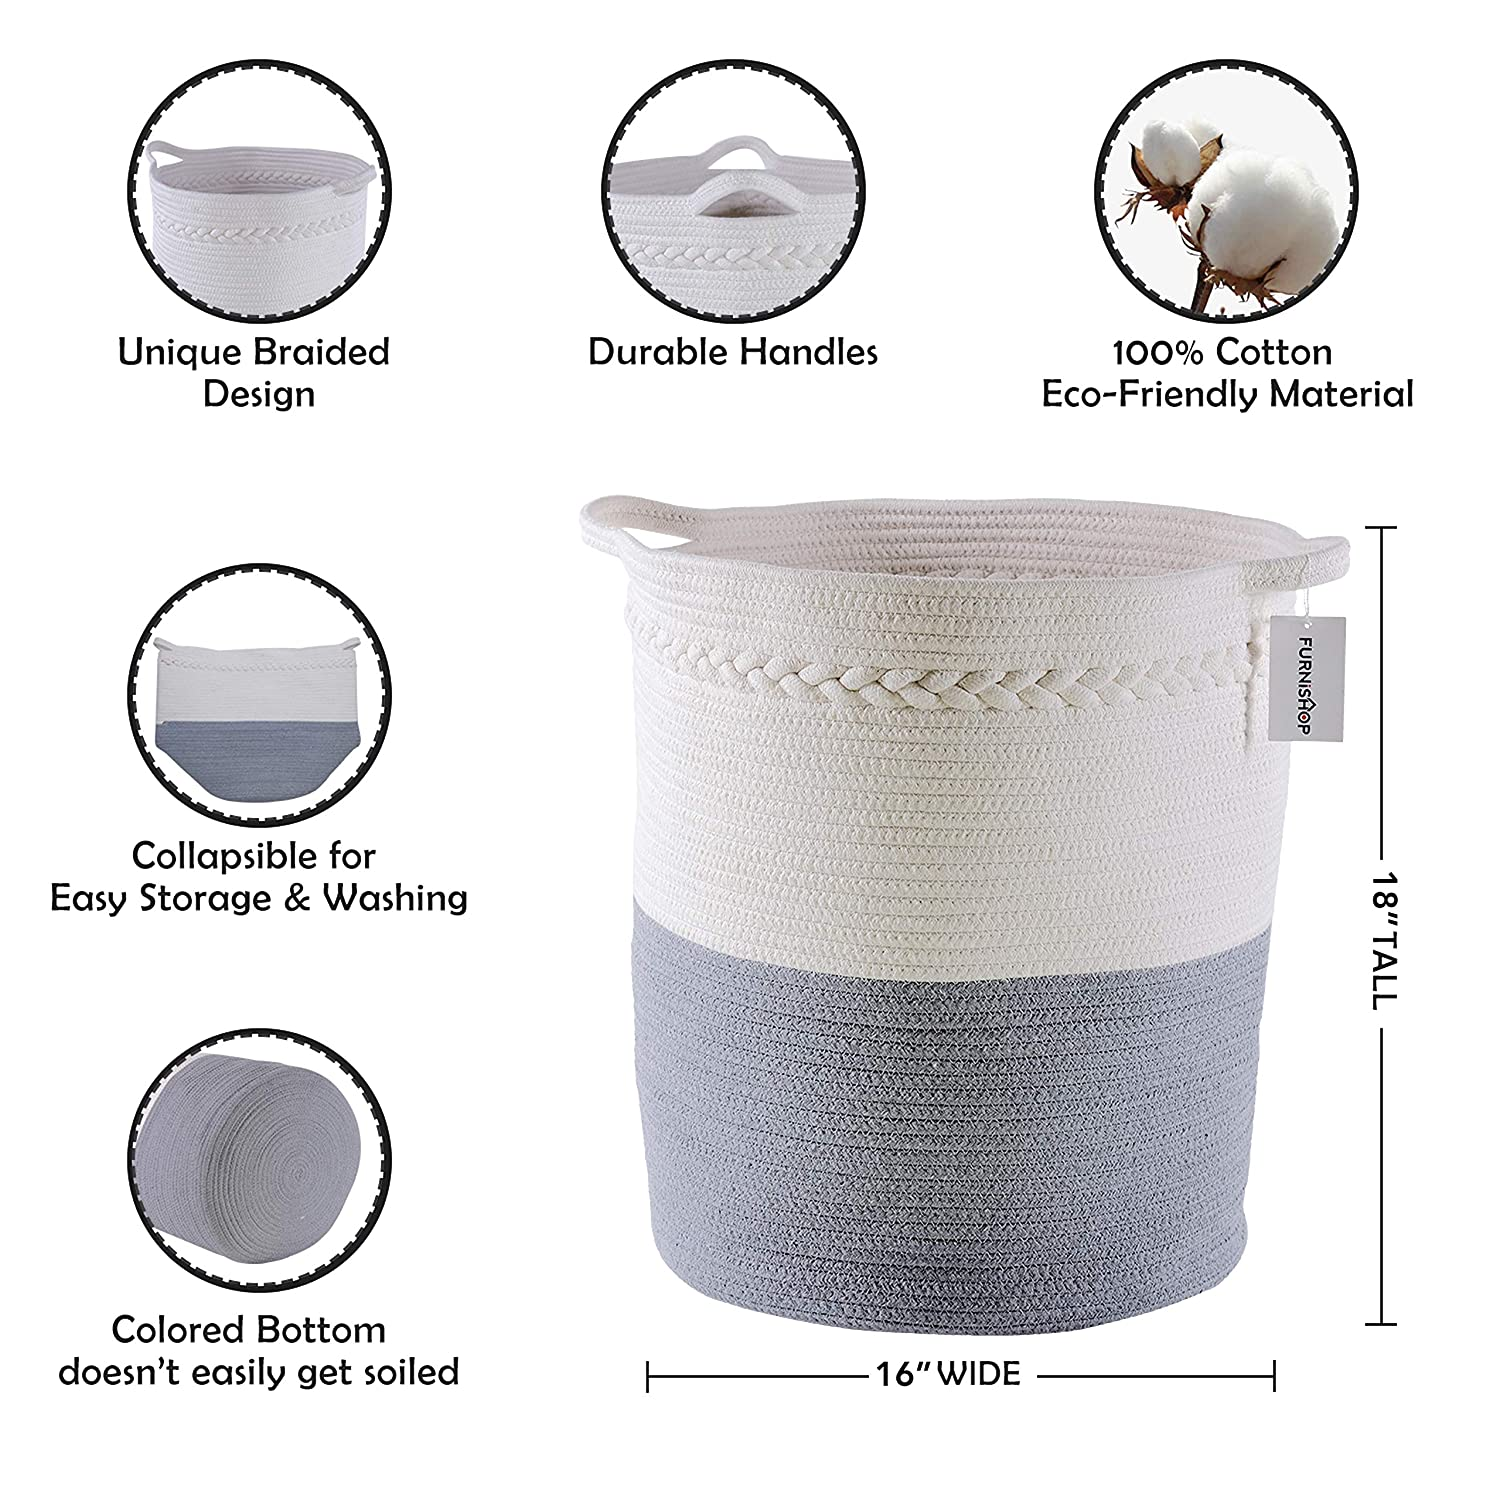 Woven Basket with Handle FURNISHOP Cotton Rope Blanket Basket with 4pcs Laundry Bag Baby Nursery Pillow Decorative Woven Storage Basket for Living Room 14.5x17 Large Baskets for Blankets Toy